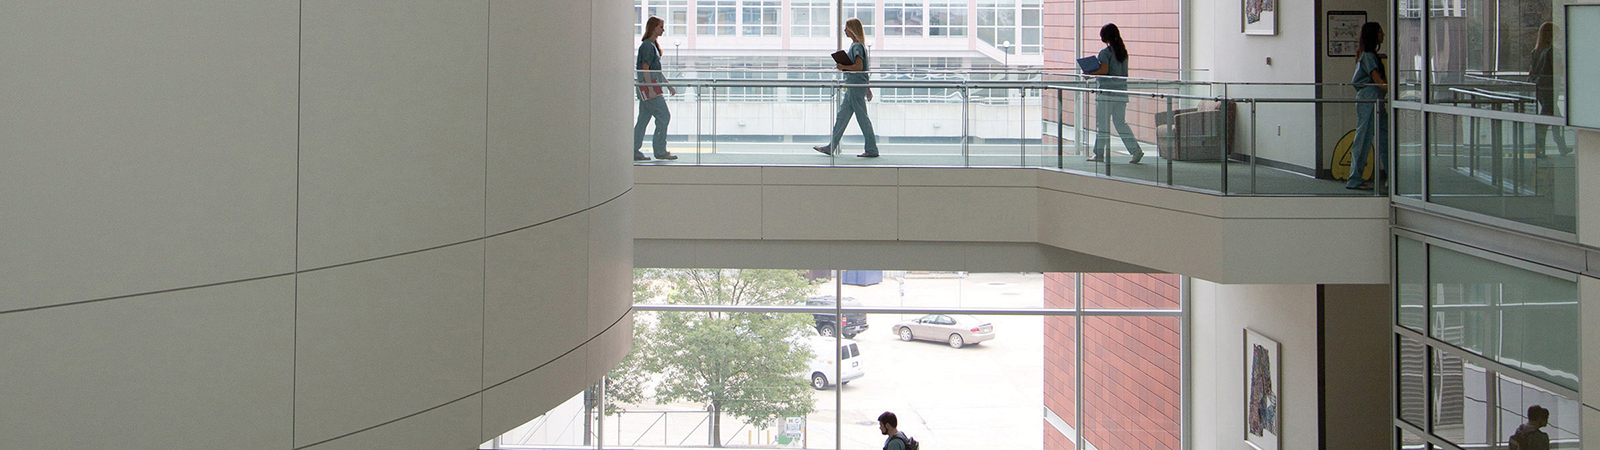 People walk across the Biomedical Sciences Research Building pathways